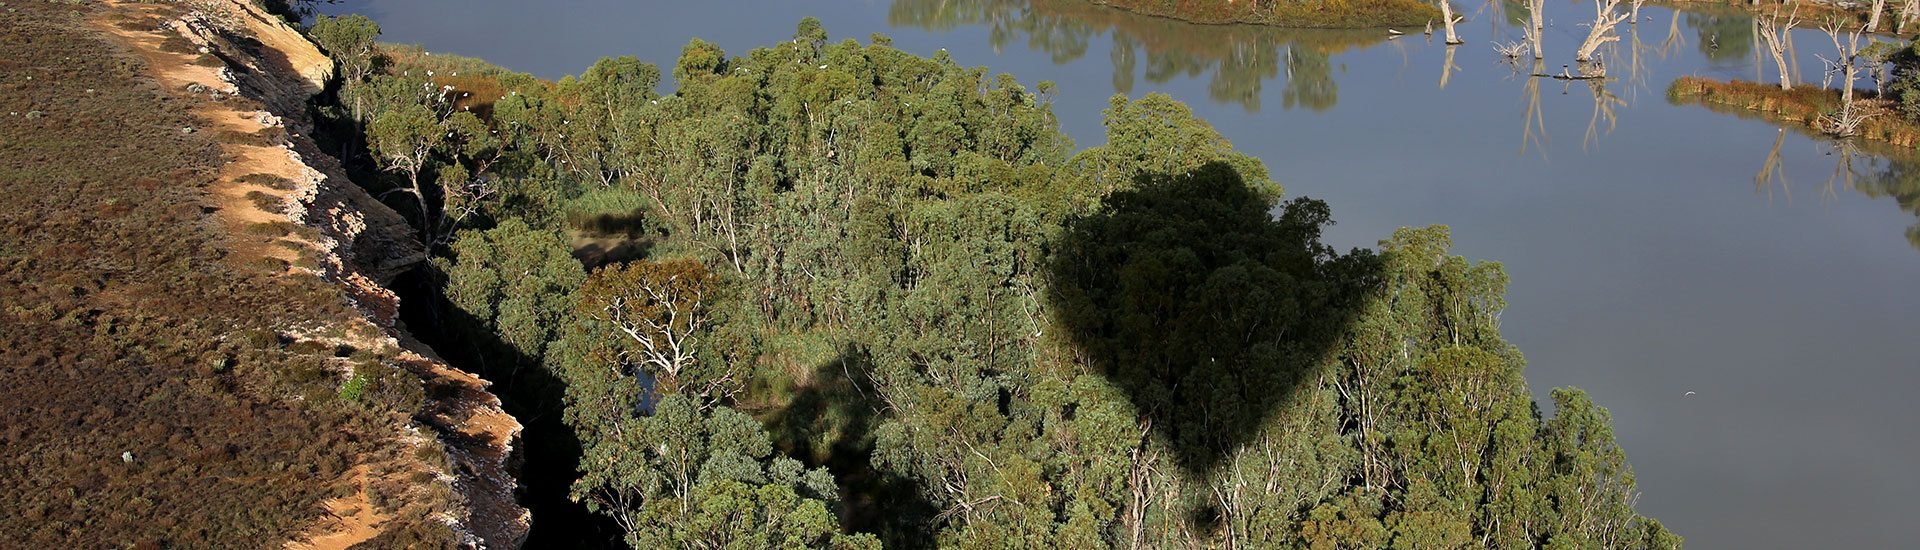 balloon-adventures-flights-over-the-murray-balloon-ride-scenic-4